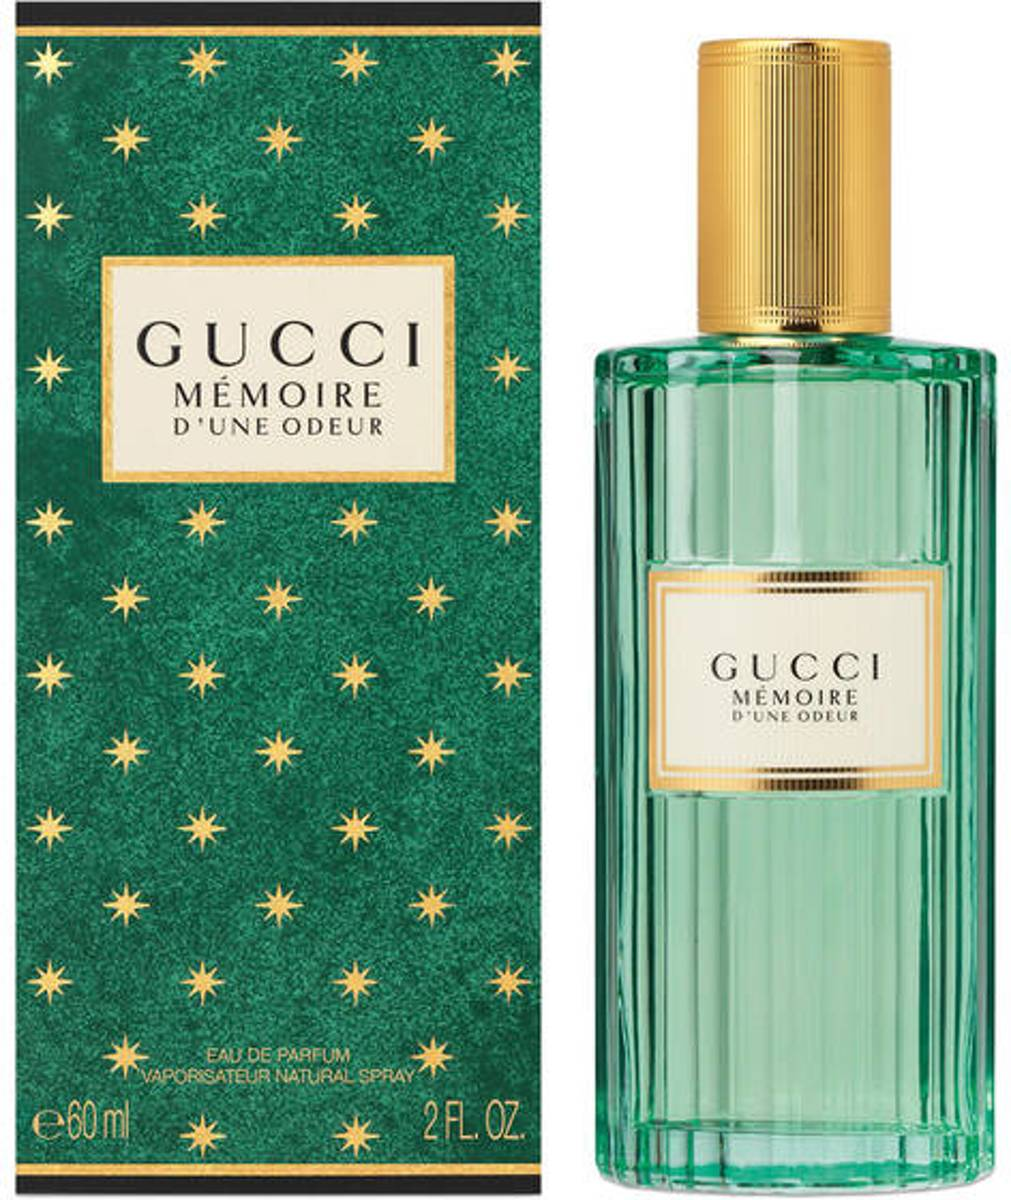 Gucci MÉMOIRE DUNE ODEUR edp spray 60 ml